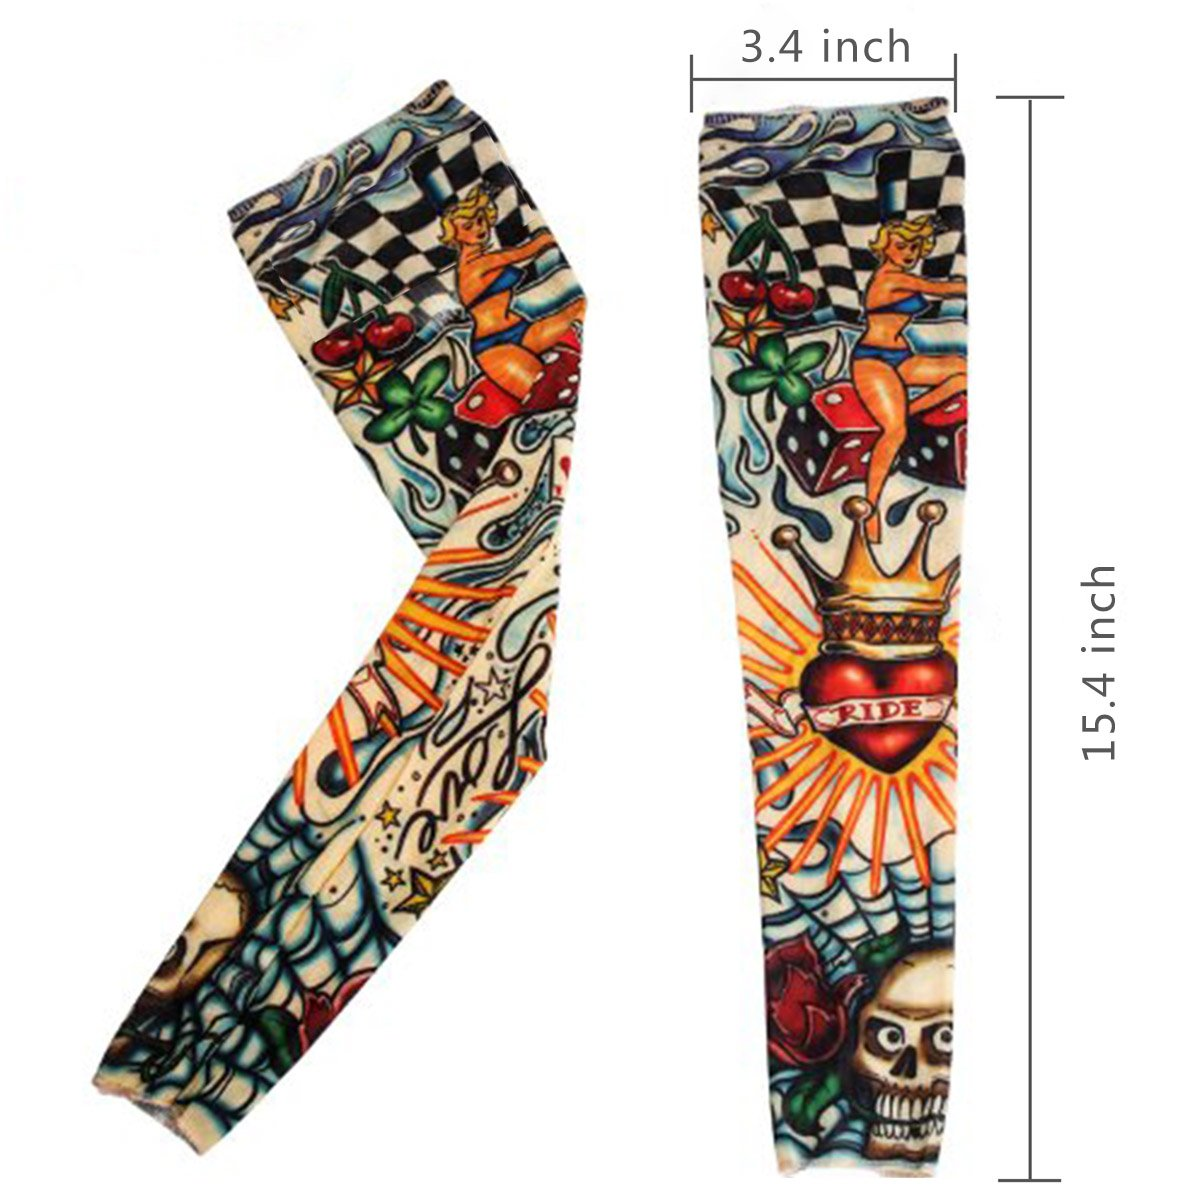 20PCS Set Arts Fake Temporary Tattoo Arm Sunscreen Sleeves - AKStore - Designs Tiger, Crown Heart, Skull, Tribal and Etc by Akstore (Image #2)